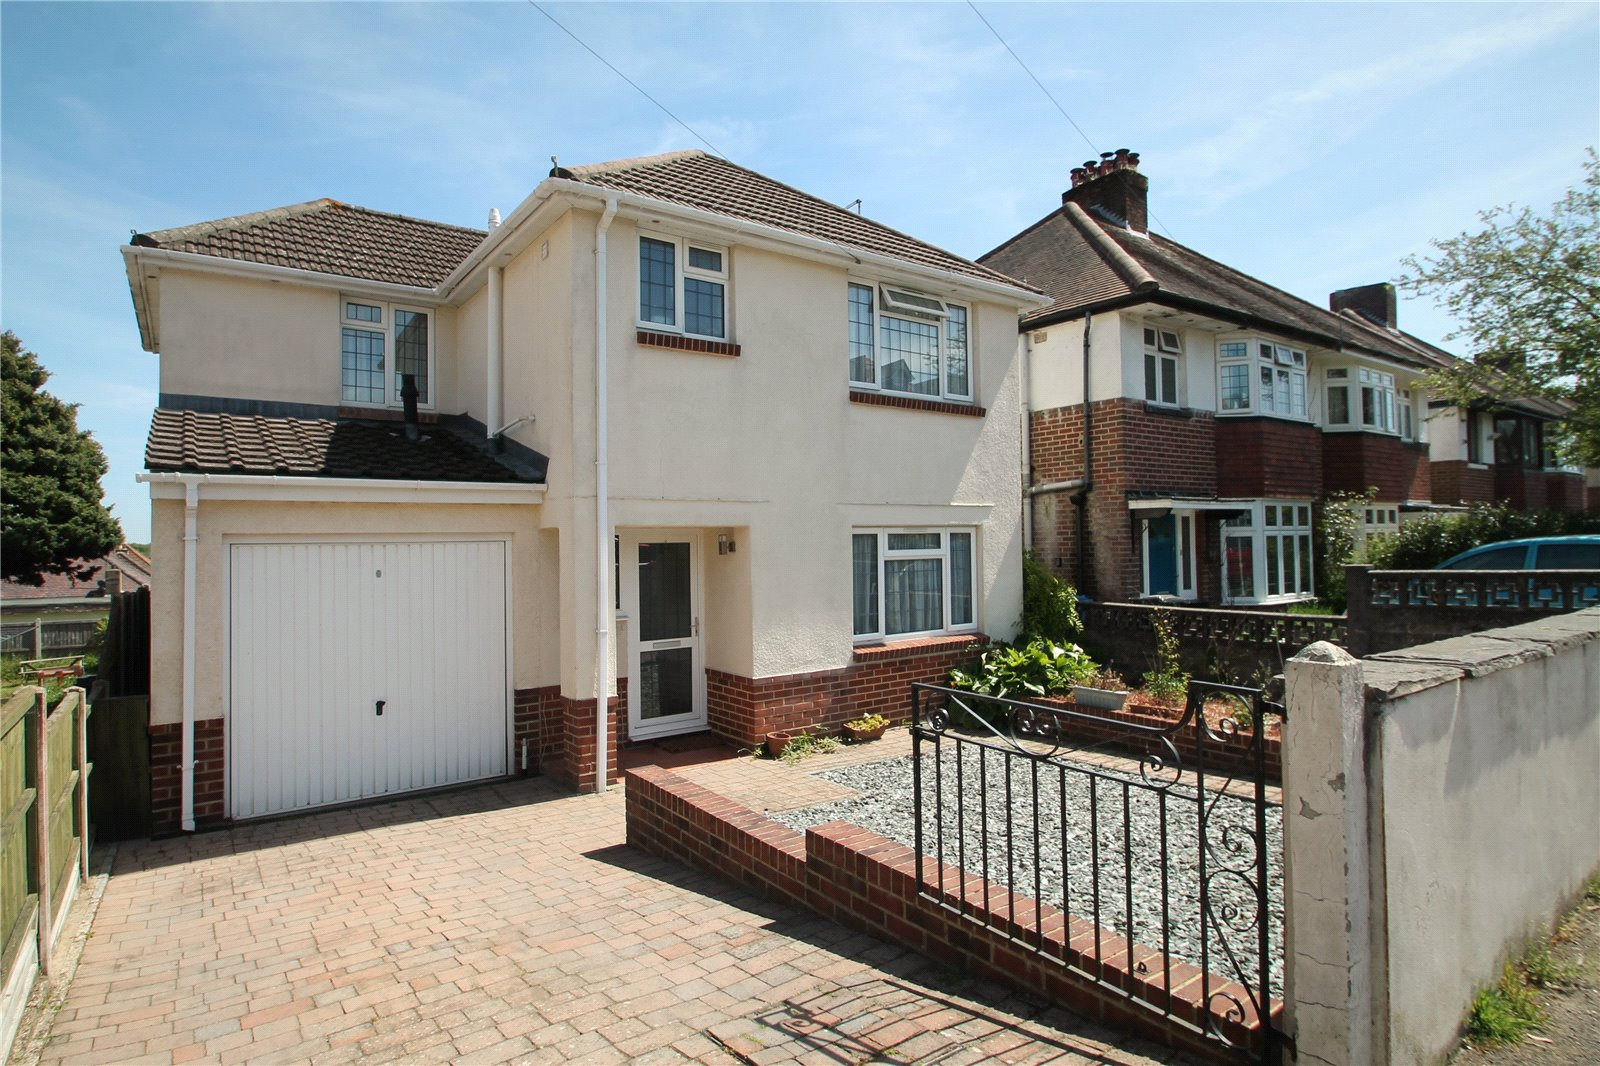 4 bed house for sale in Lower Parkstone 0